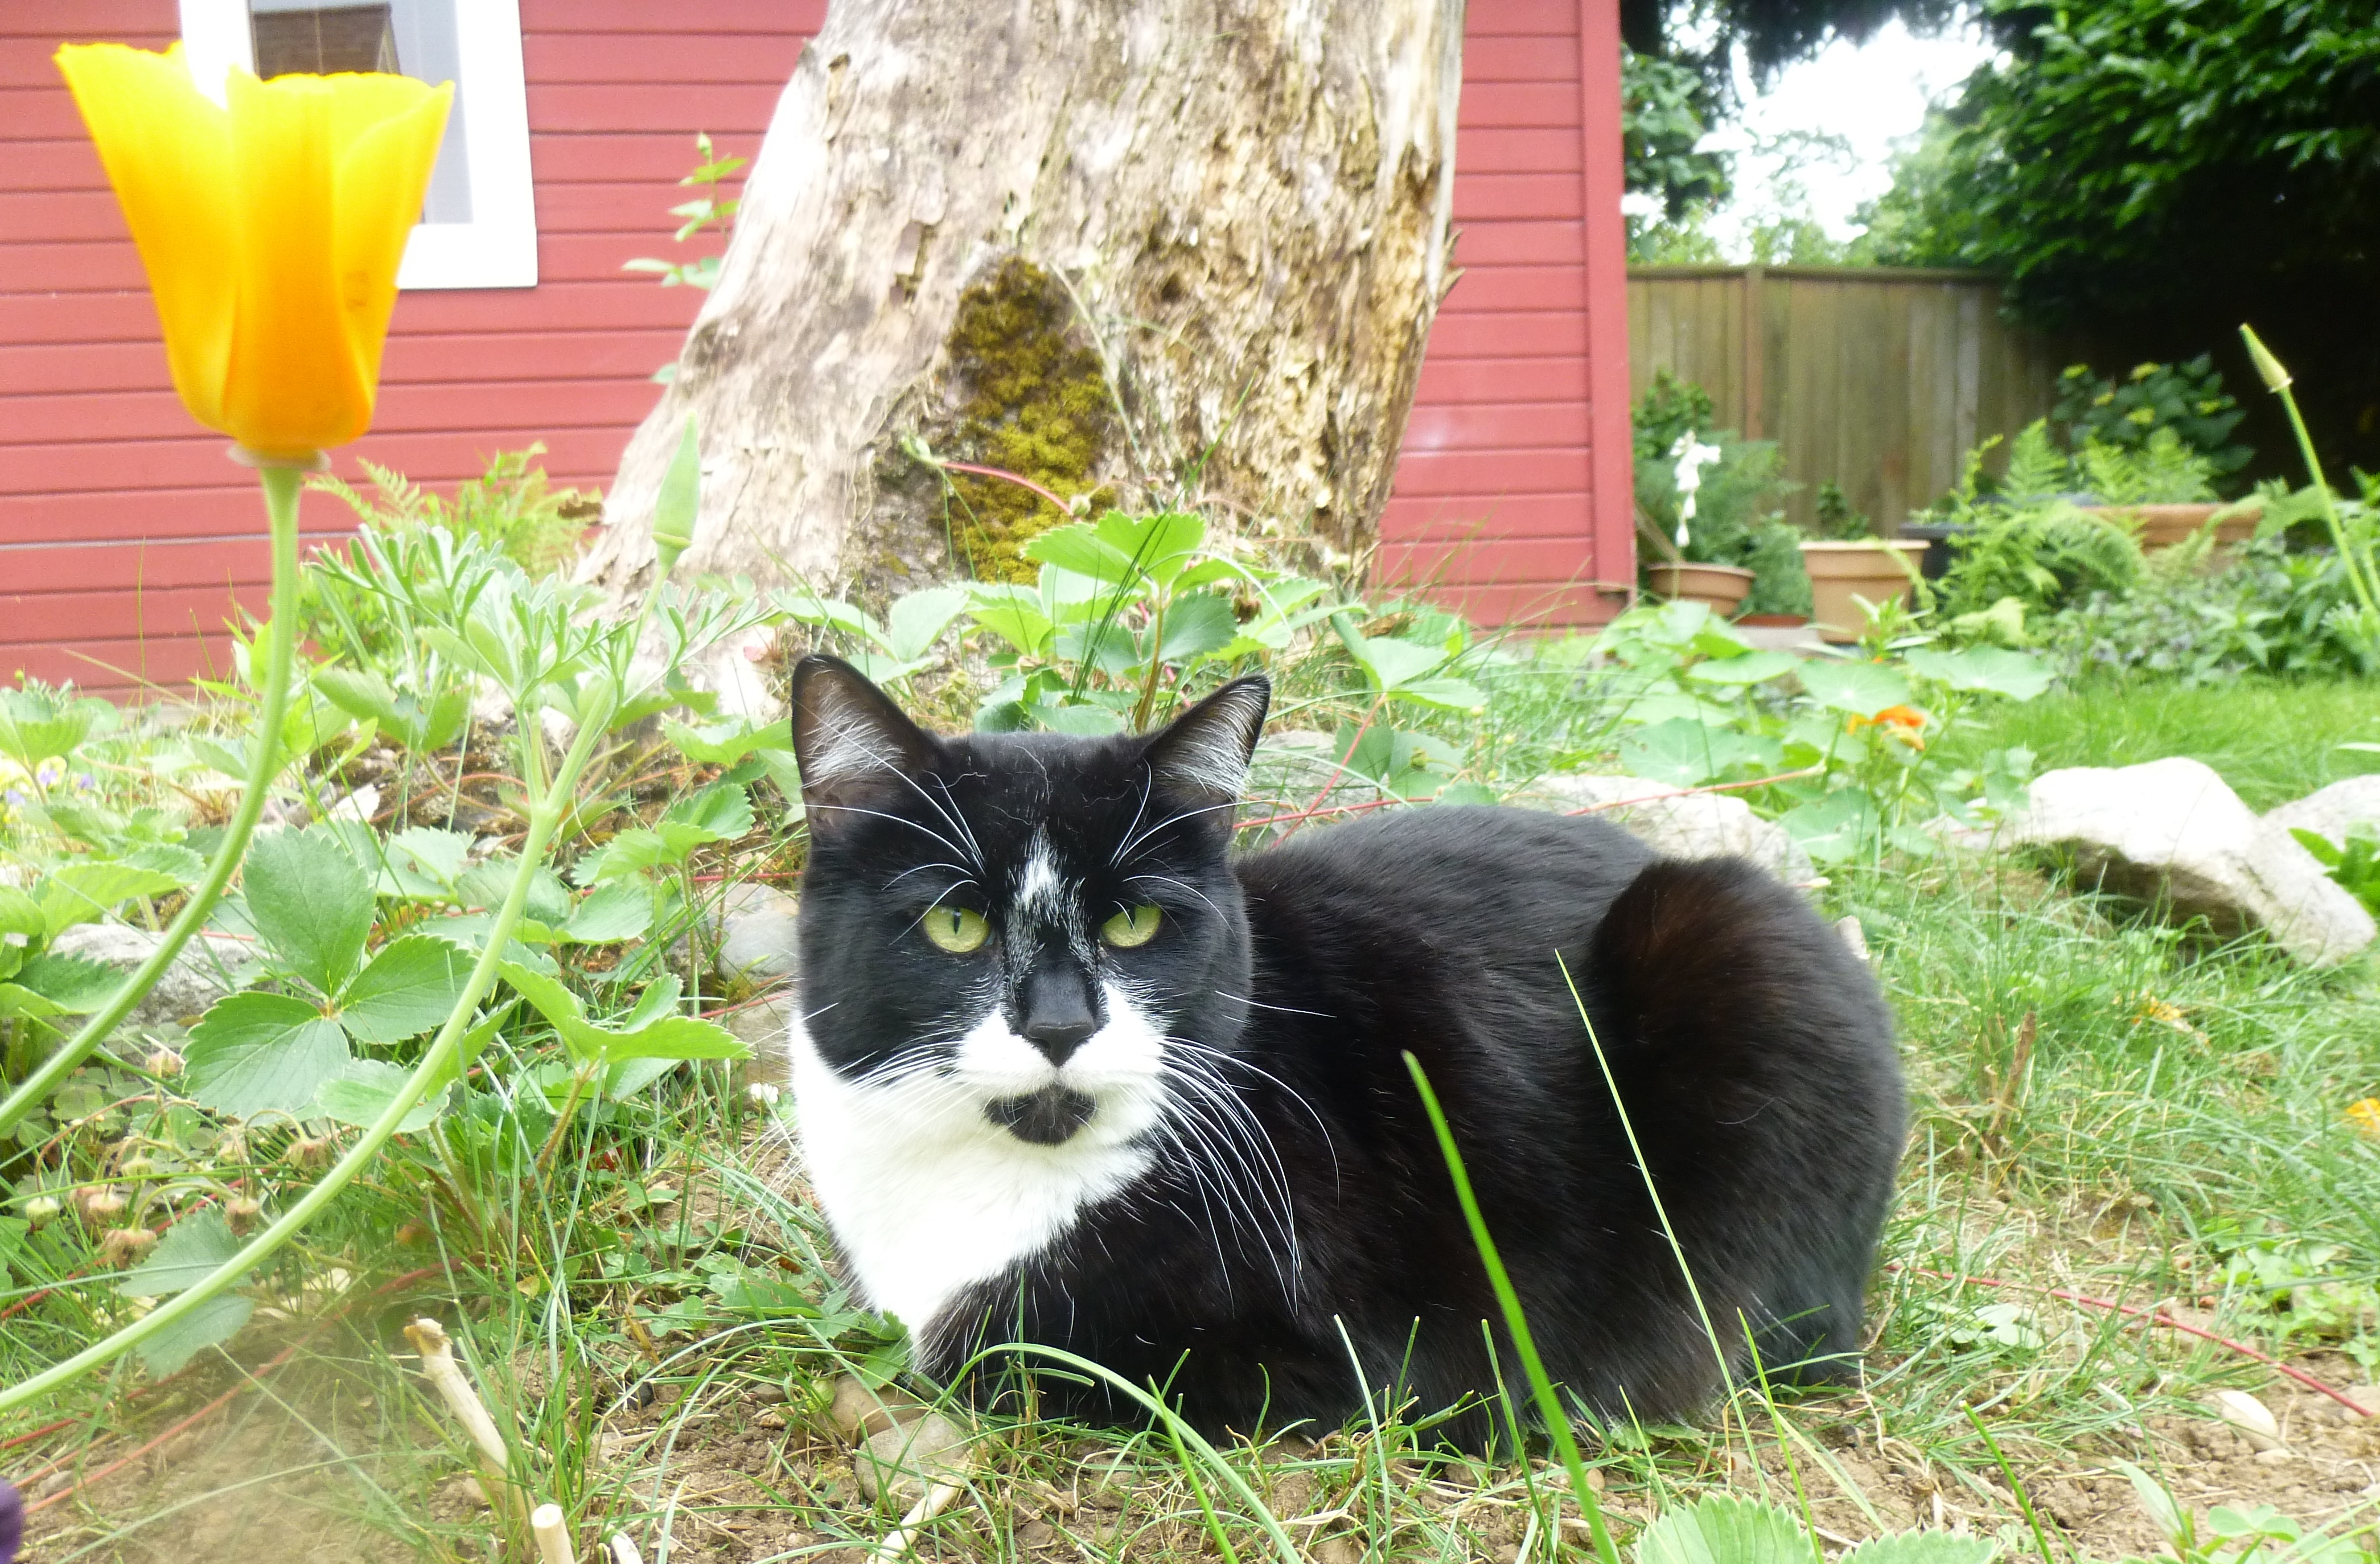 Mario my famous cat and gardening companion.